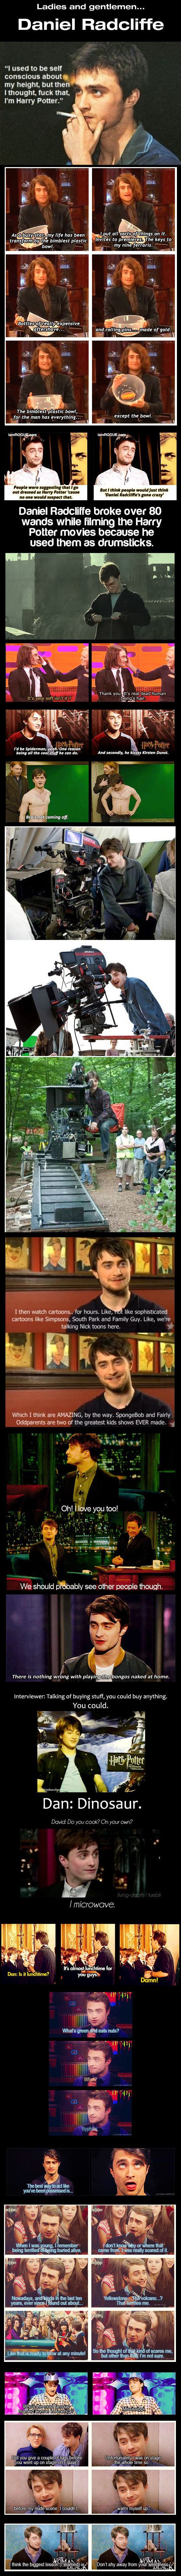 Ladies and Gentlemen...Daniel Radcliffe more funny pics on facebook: https://www.facebook.com/yourfunnypics101